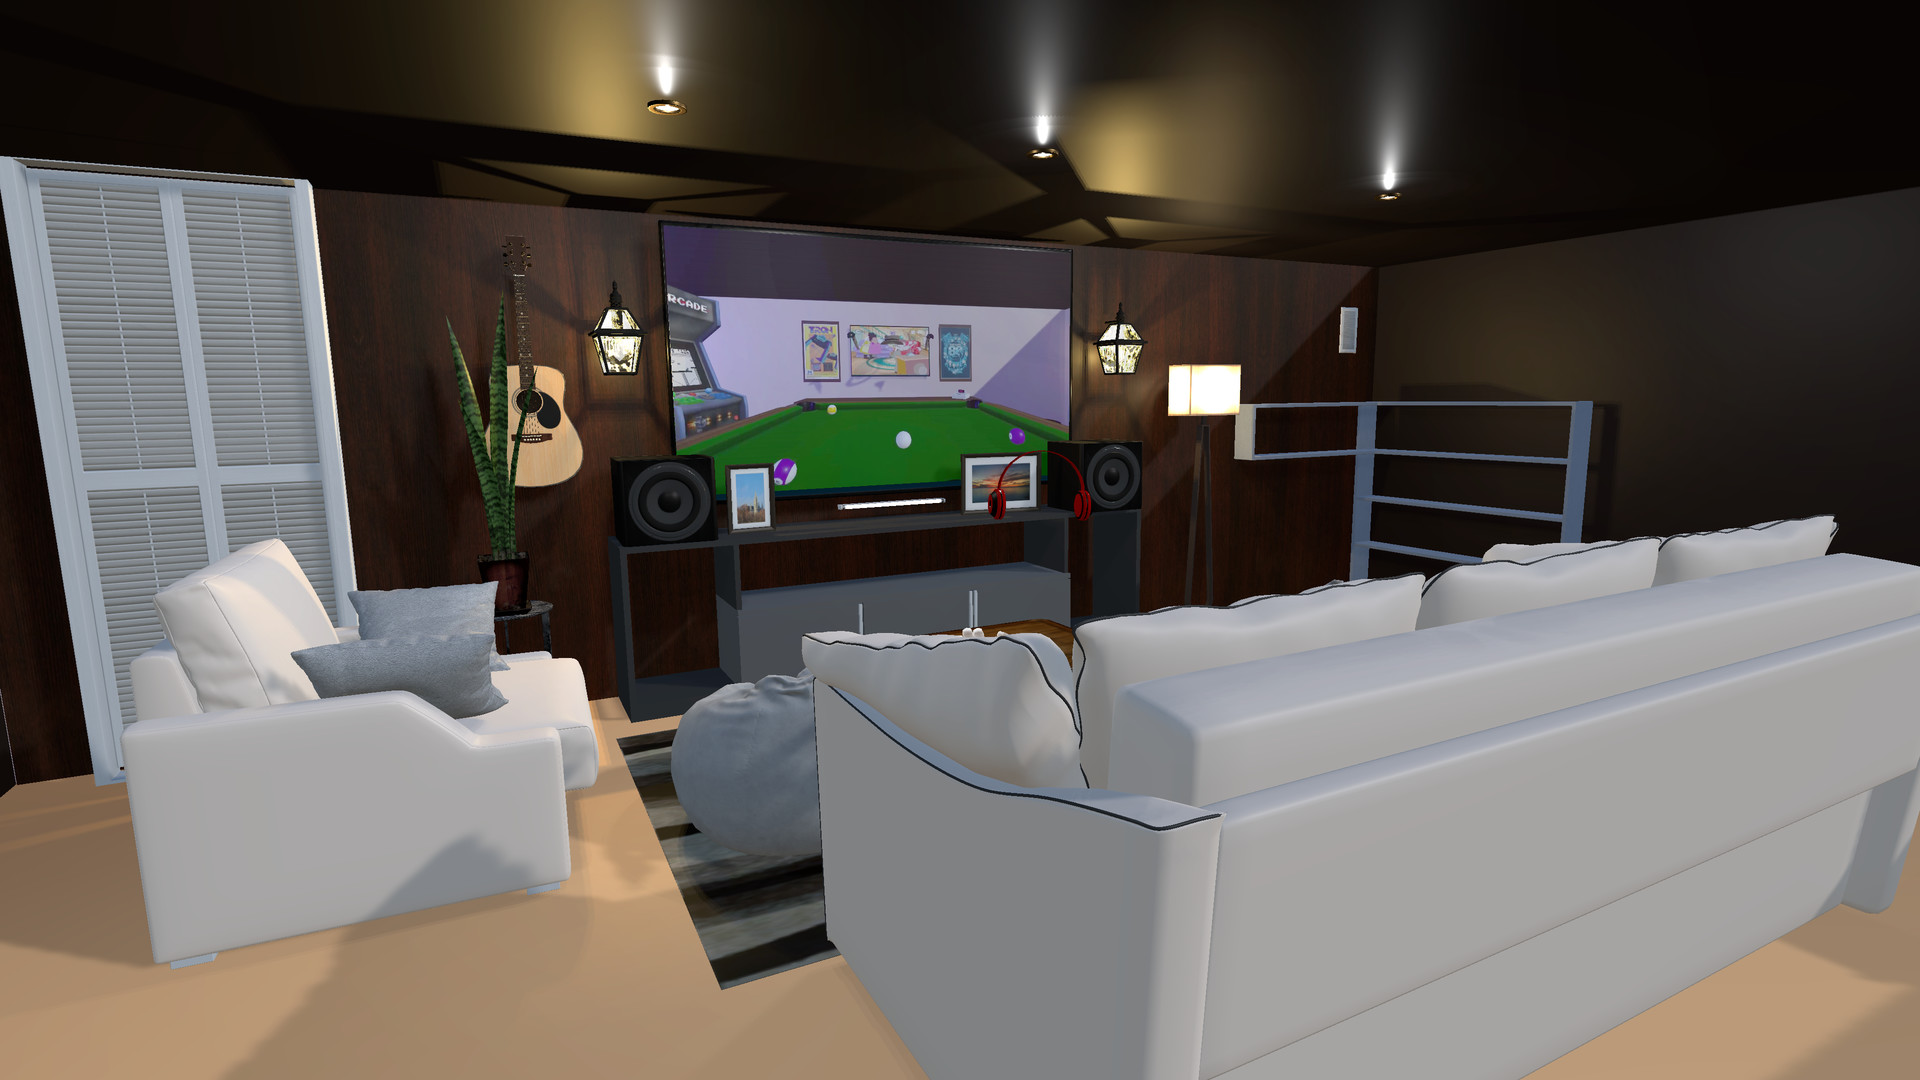 Vr home on steam for Vr house